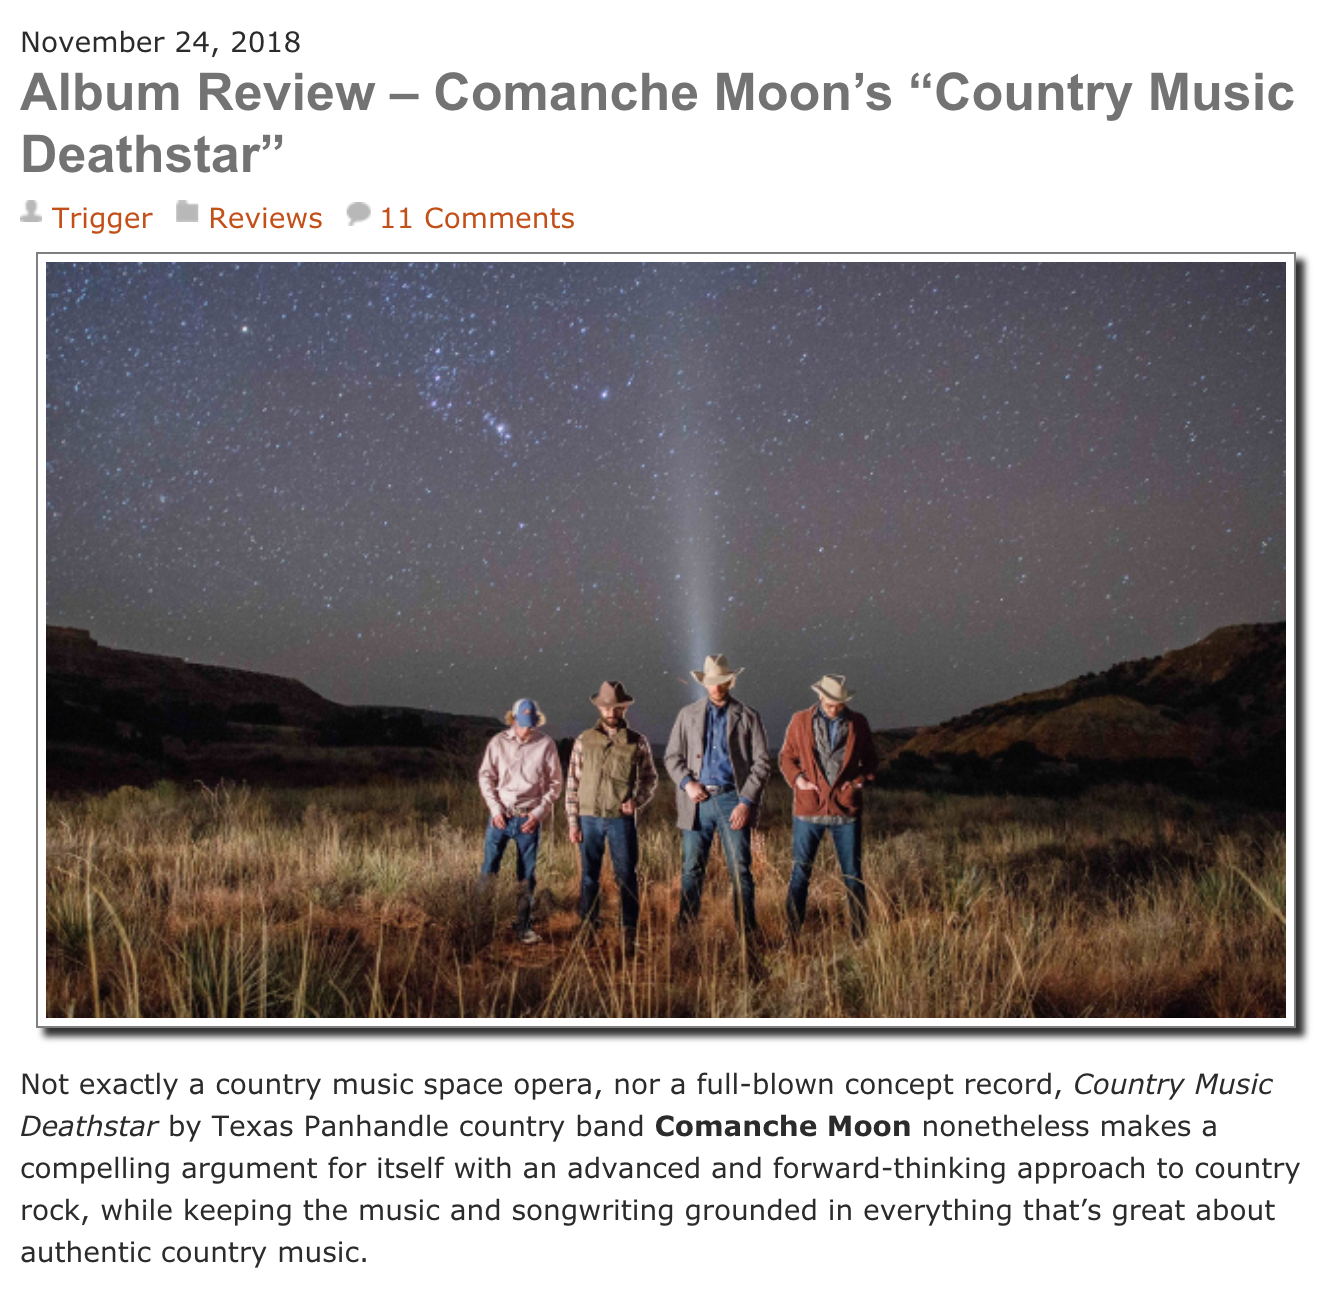 Saving Country Music - Not exactly a country music space opera, nor a full-blown concept record, Country Music Deathstar by Texas Panhandle country band Comanche Moon nonetheless makes a compelling argument for itself with an advanced and forward-thinking approach to country rock, while keeping the music and songwriting grounded in everything that's great about authentic country music.West Texas ain't the cosmos, but it's vastness and history have inspired many songs and artists over the years no different than gazes skyward at the celestial heavens. That's why the region has consistently churned out some of the best songwriters and performers from the Lone Star State and beyond, and it's also what makes Texas country a much more enriching alternative to whatever Music Row has cooking.Chandler Sidwell and Mark Erickson make up the principals of Comanche Moon, and both come from multi-generation Panhandle rancher stock, underpinning their music with rugged country roots, and genuine stories of agrarian struggles. It's their interest in classic rock that makes this a more unique project, which is not completely foreign to what has inferred a lot of the Texas music sound over the years. But instead of spending time soliloquizing how the beer and babes are always better in the Lone Star State like some of their Texas compadres, Comanche Moon is more preoccupied with composing meaningful songs and stringing them together in a more deliberate manner, both in story and sound.Country Music Deathstar takes you on a journey. Little audio vignettes help bind the songs together, while the stories of love, loss, struggle, and restoration flow one into another, and tell a bigger tale. At times the stories necessitate slimmed-down traditional country interpretations, with fiddle and steel guitar painting the picture. Other times the guitars come at you loud and heavy, with the bark and dissonance needed to find the appropriate mood for the moment. Still other times the music is a 